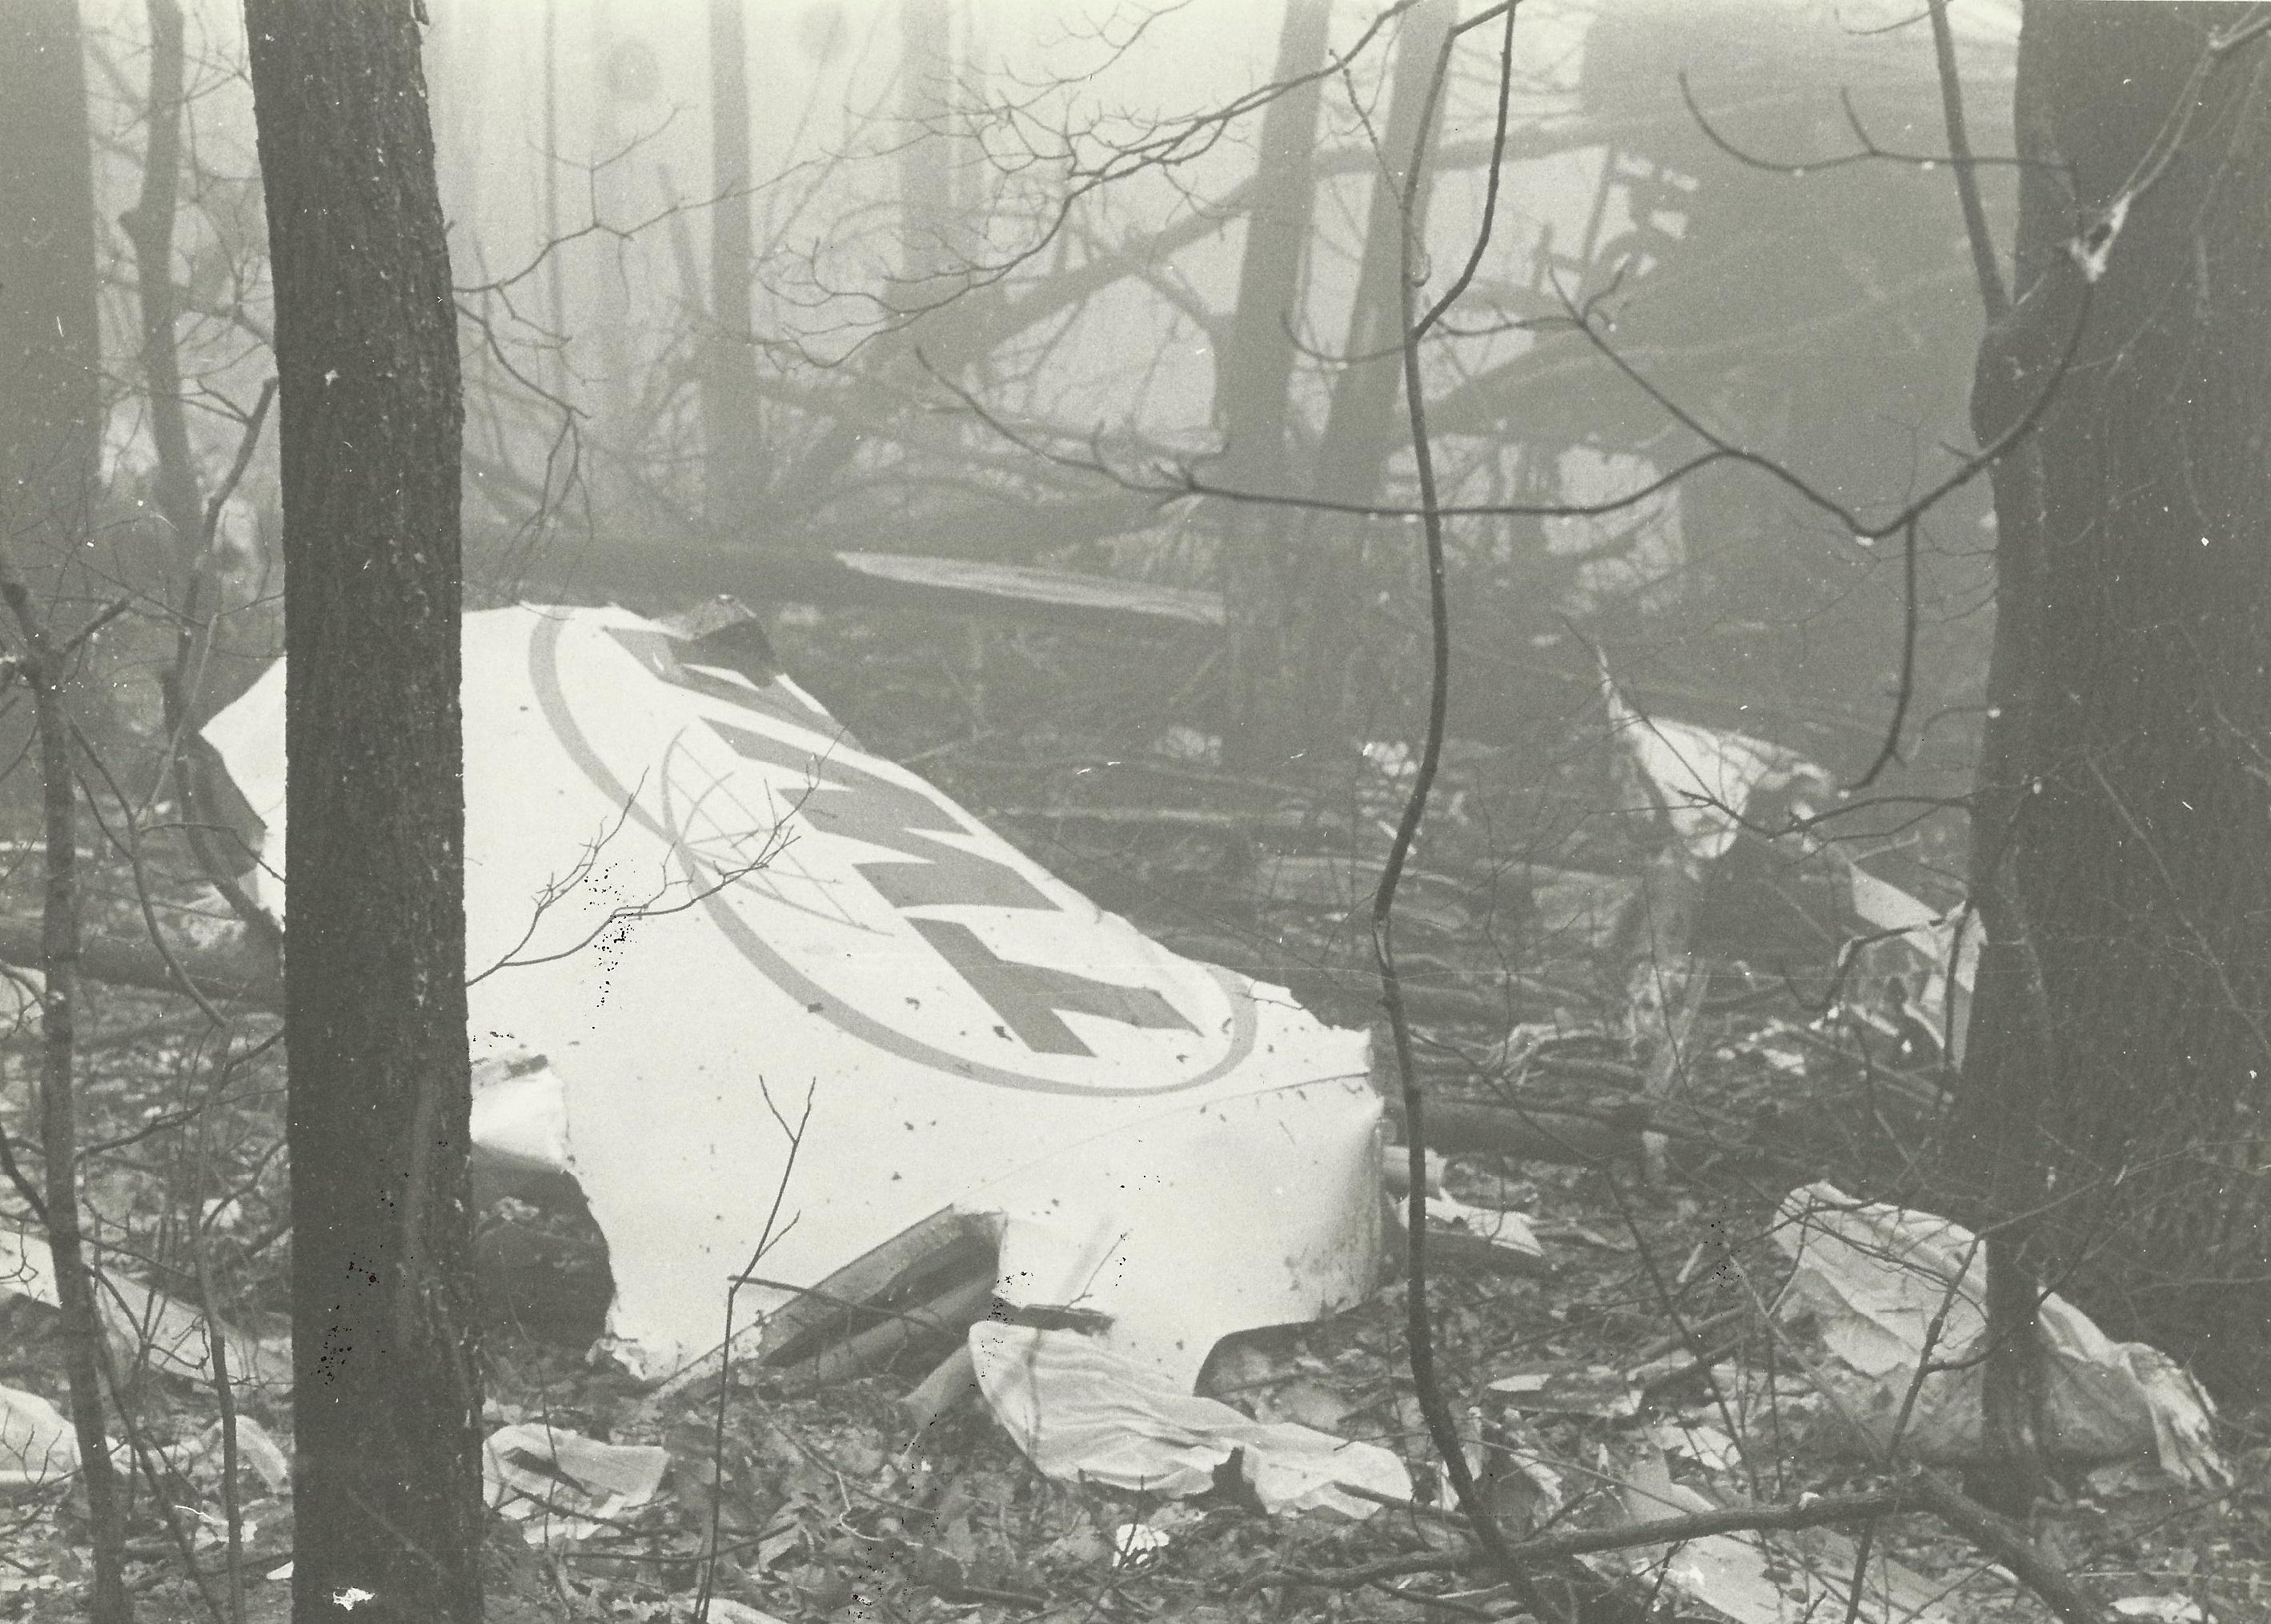 The TWA livery lying near the initial impact site on the top of Mount Weather. (Photo courtesy of Oliver Dube)